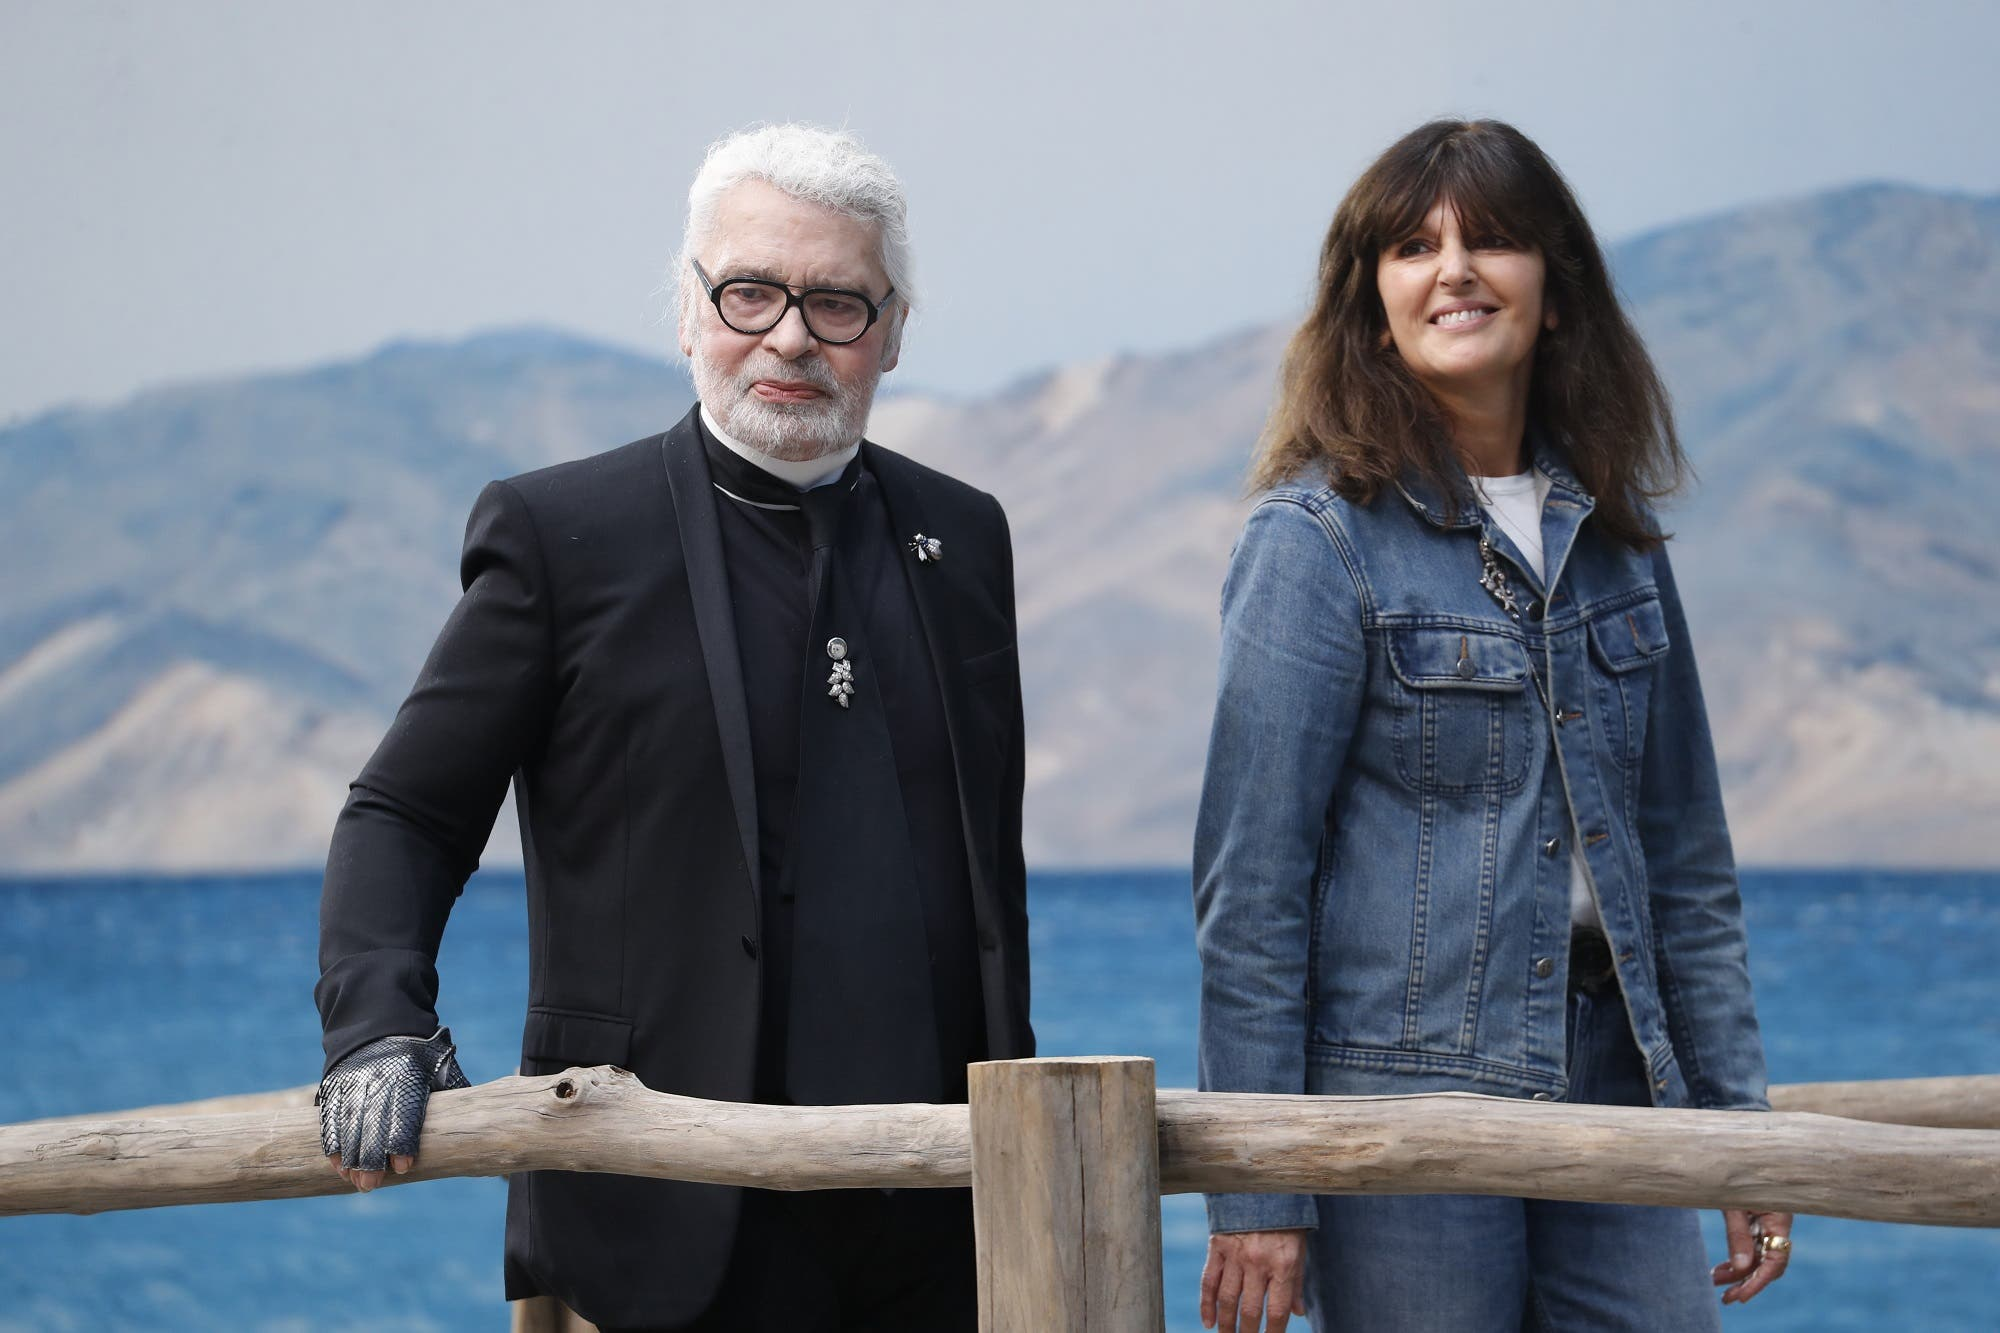 Karl Lagerfeld and Virginie Viard walks the runway after the Chanel show on October 2, 2018 in Paris, France. (Shutterstock)